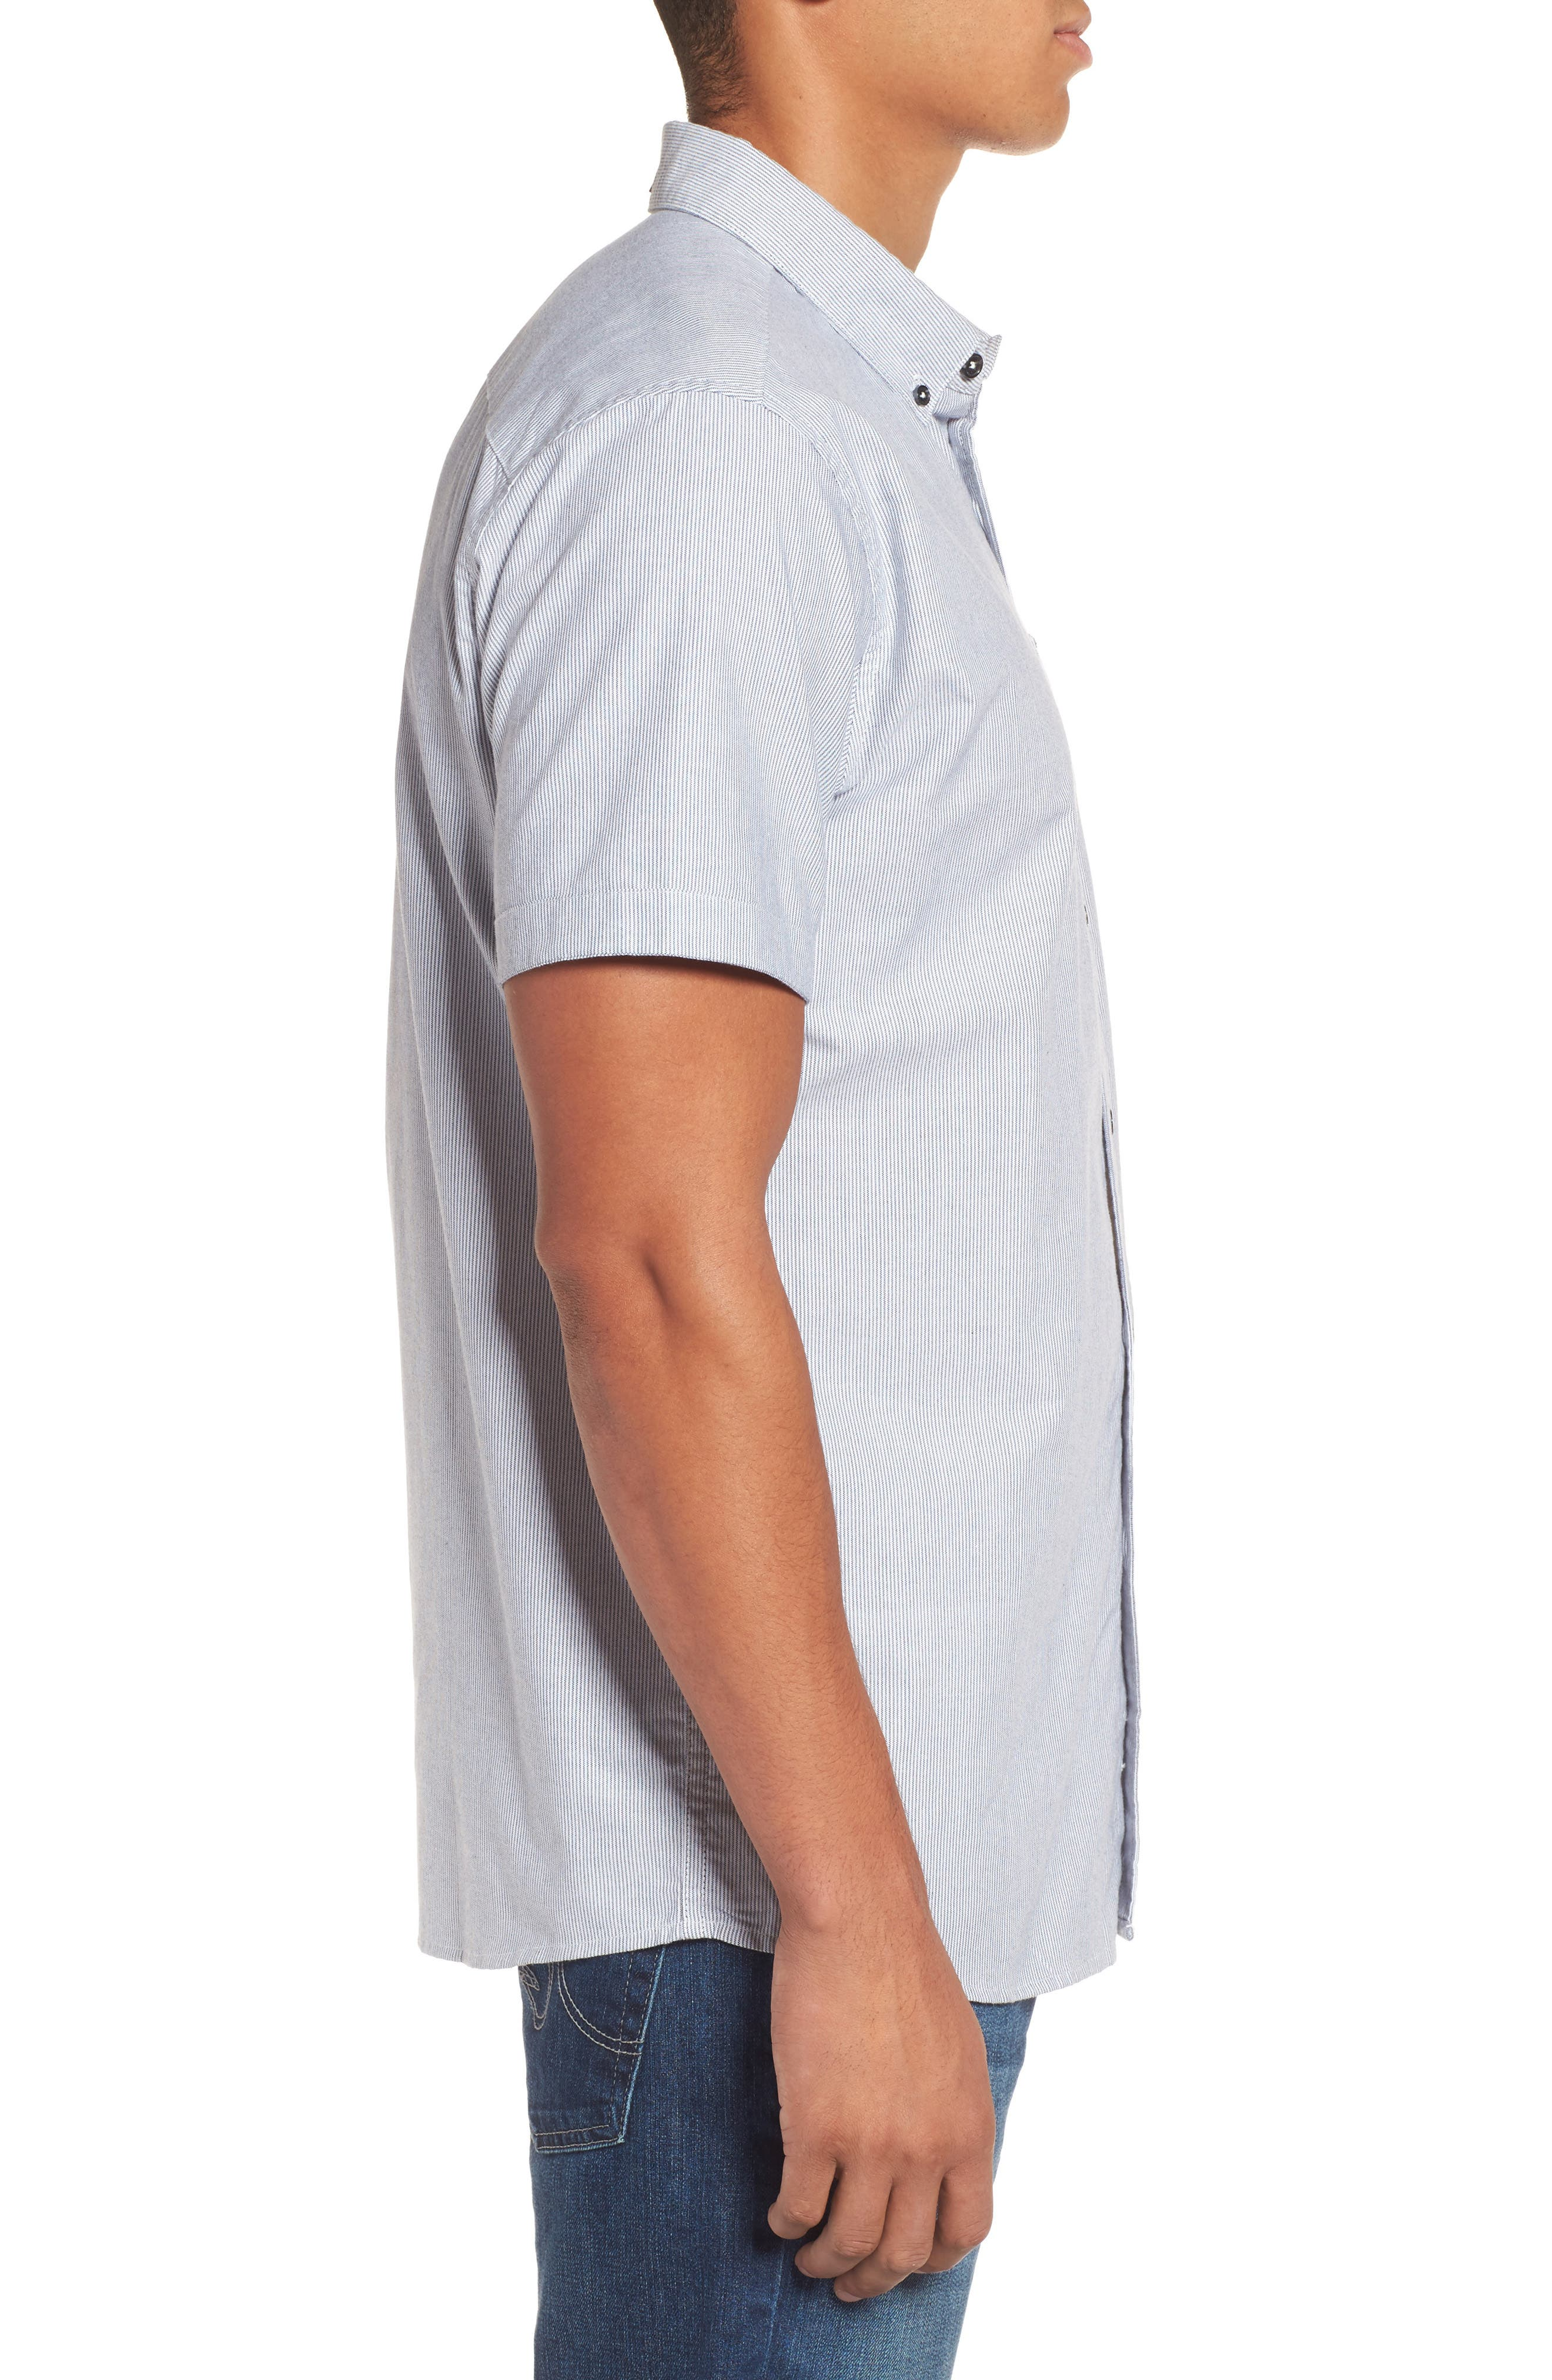 Ourtime Woven Shirt,                             Alternate thumbnail 3, color,                             116